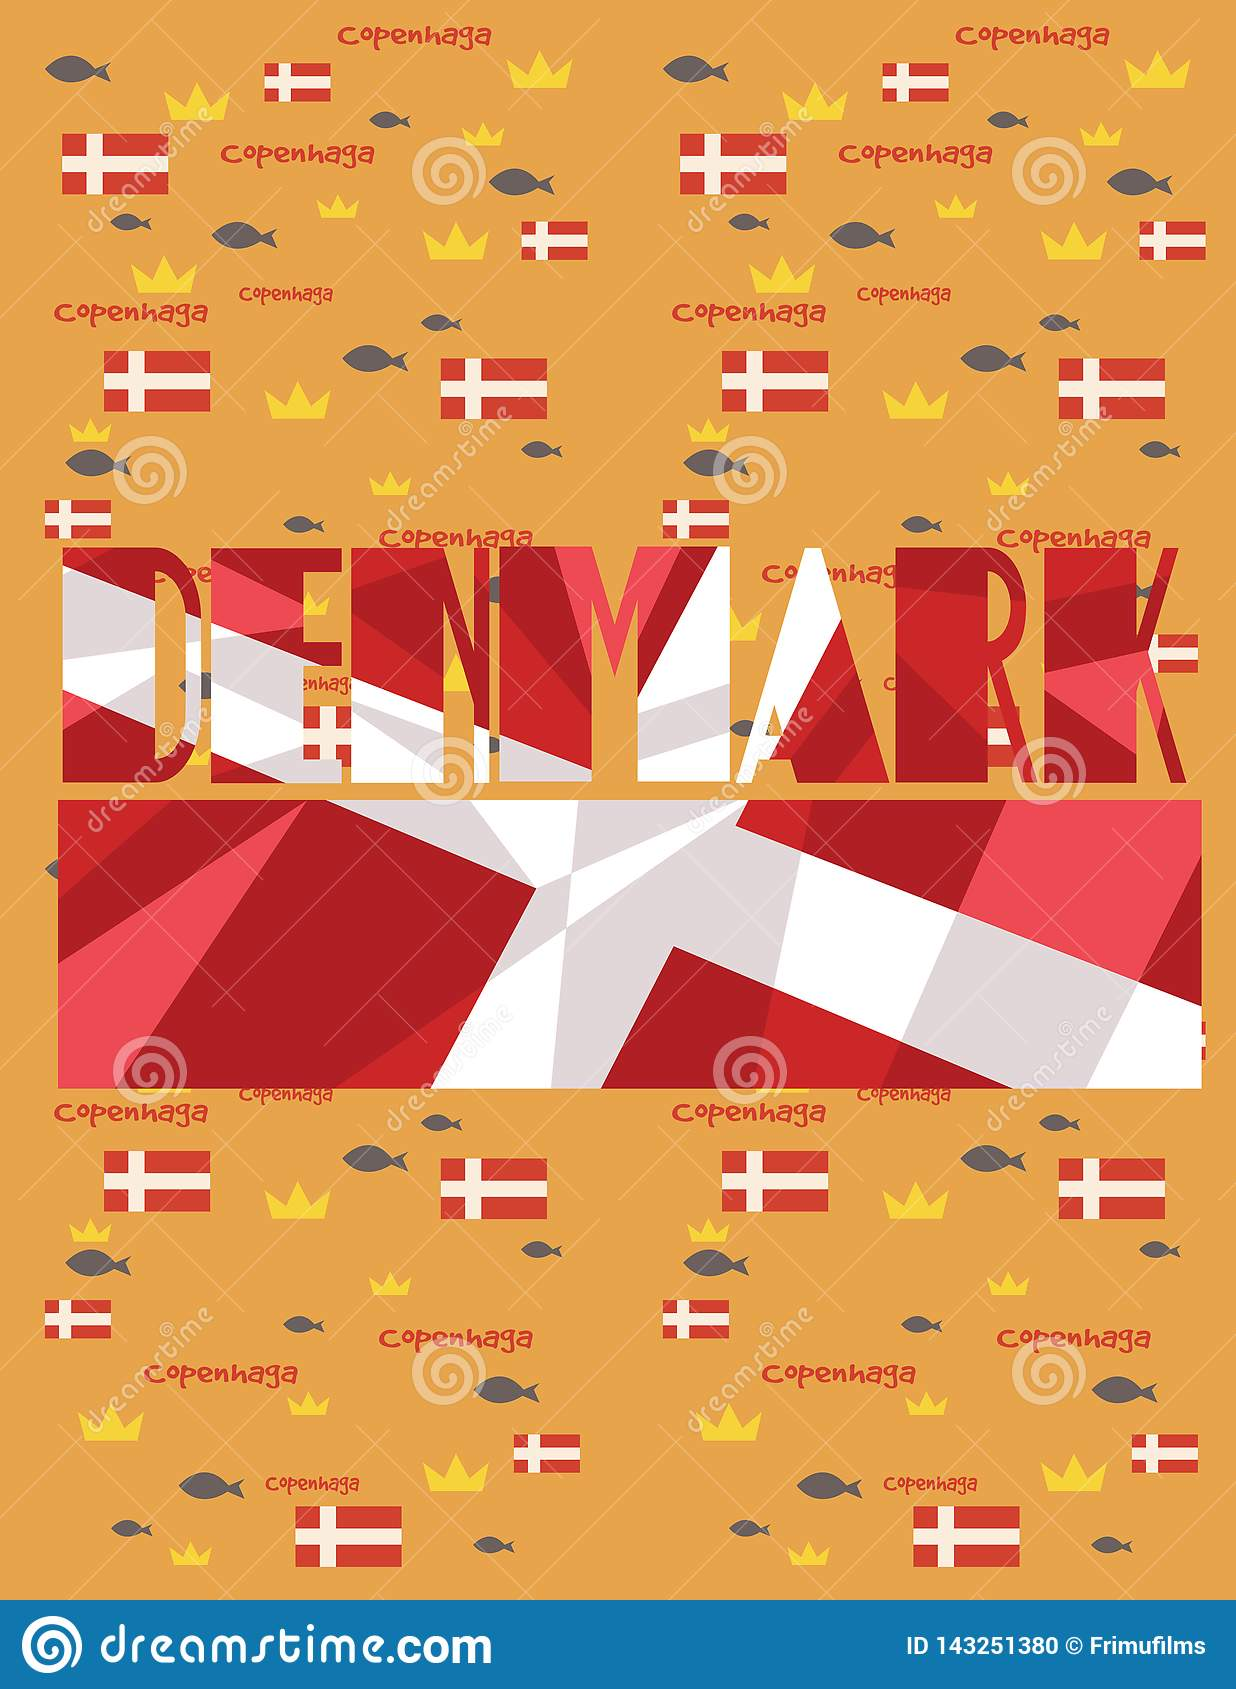 Adreano denmark map country infographics stock illustration